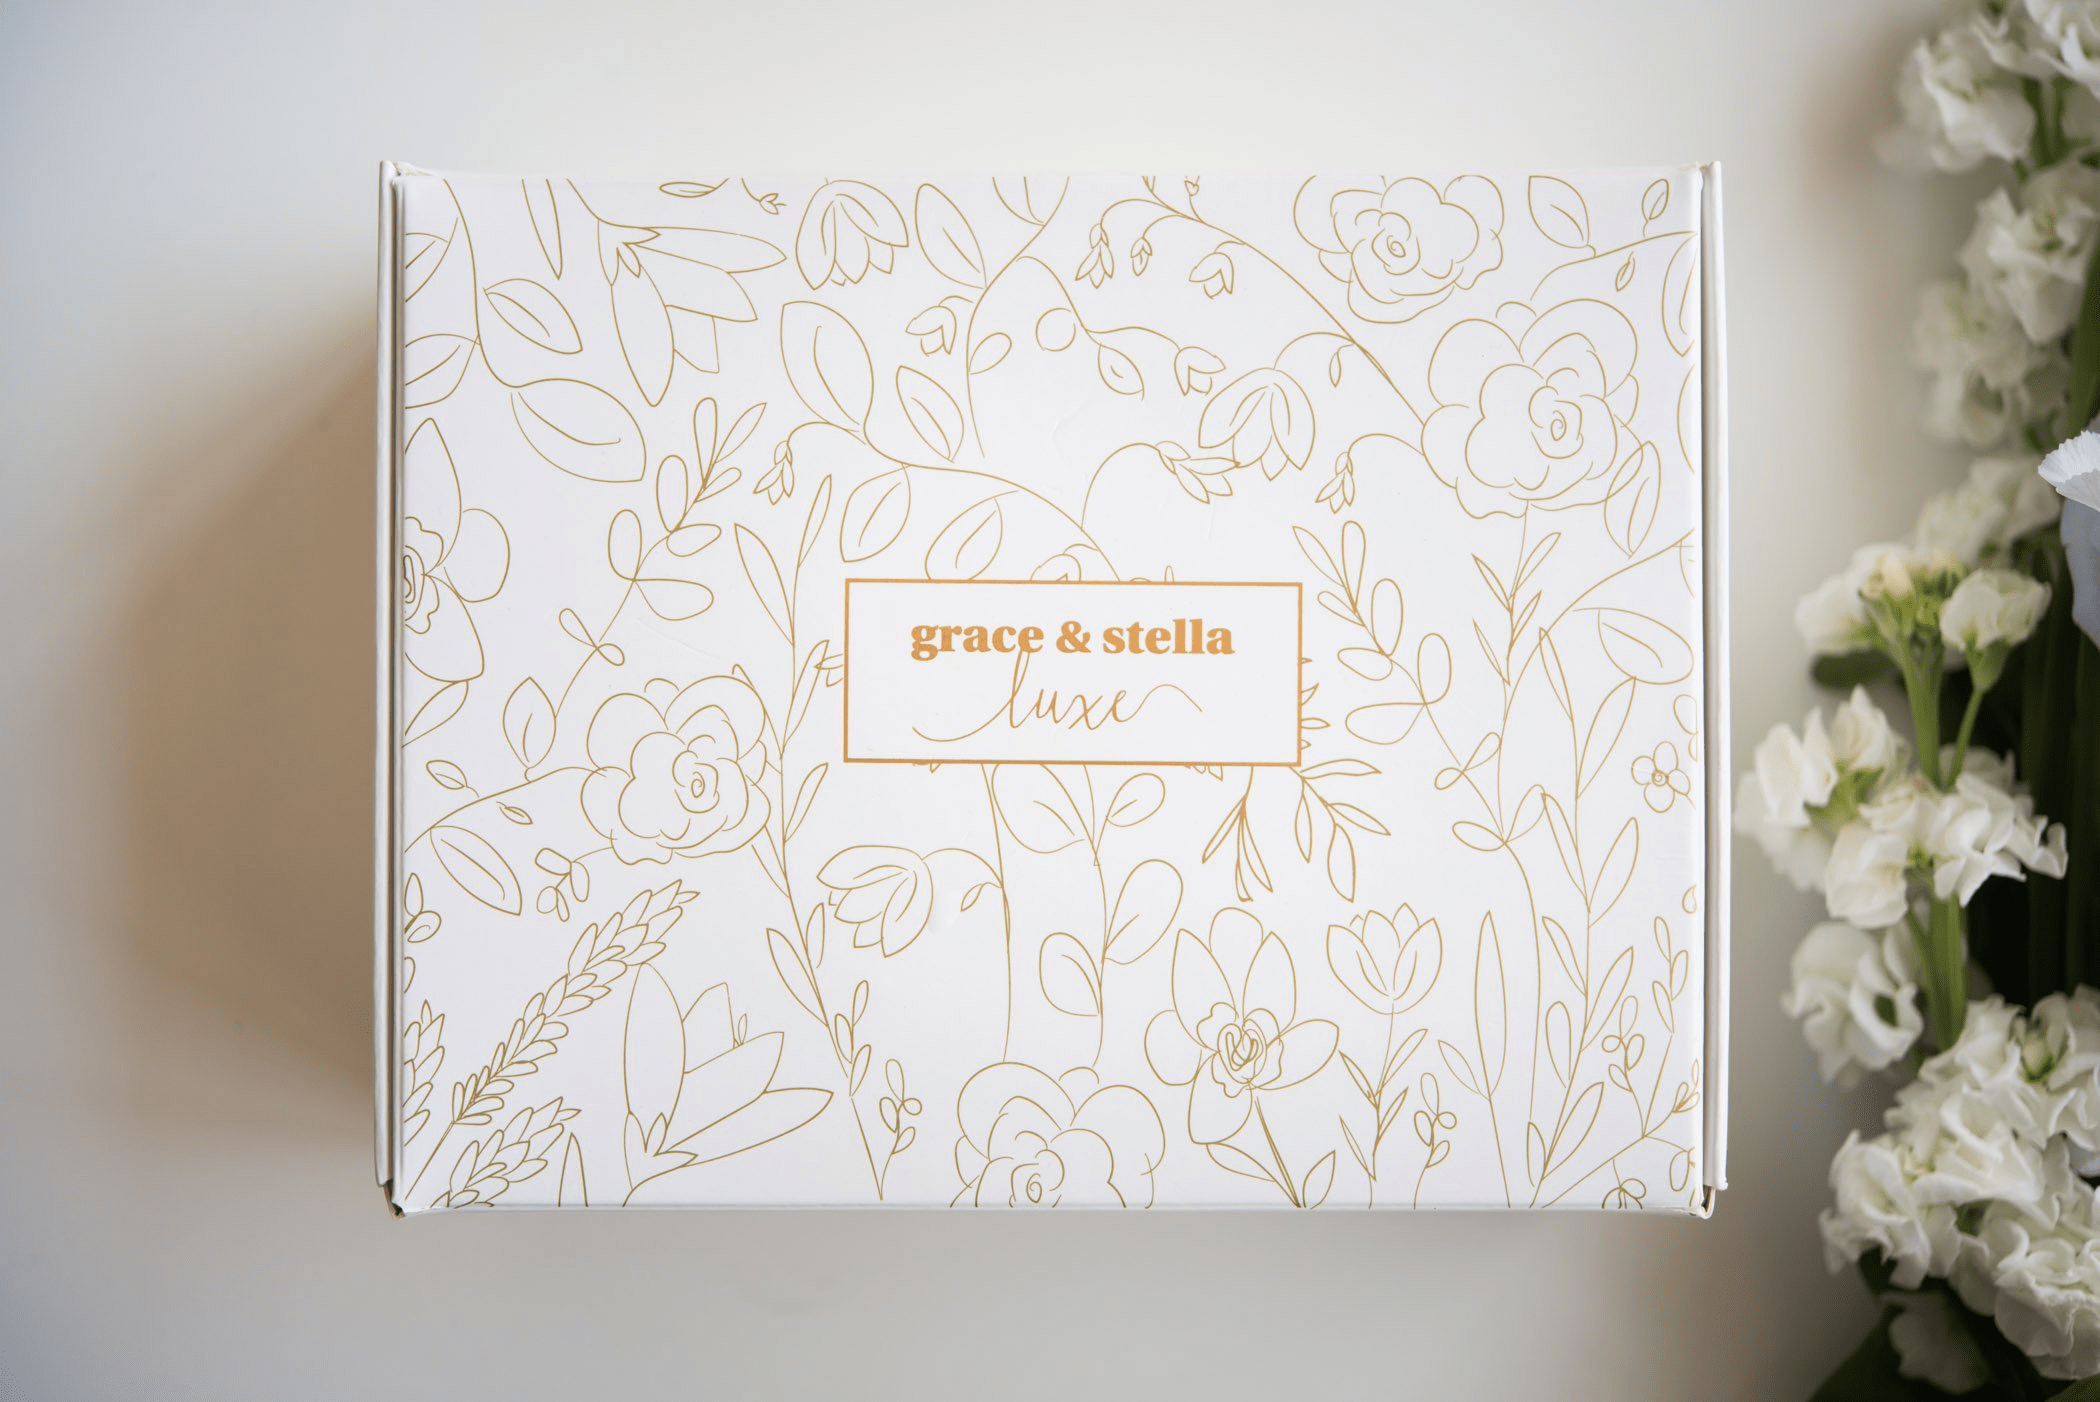 Grace & Stella Luxe Box